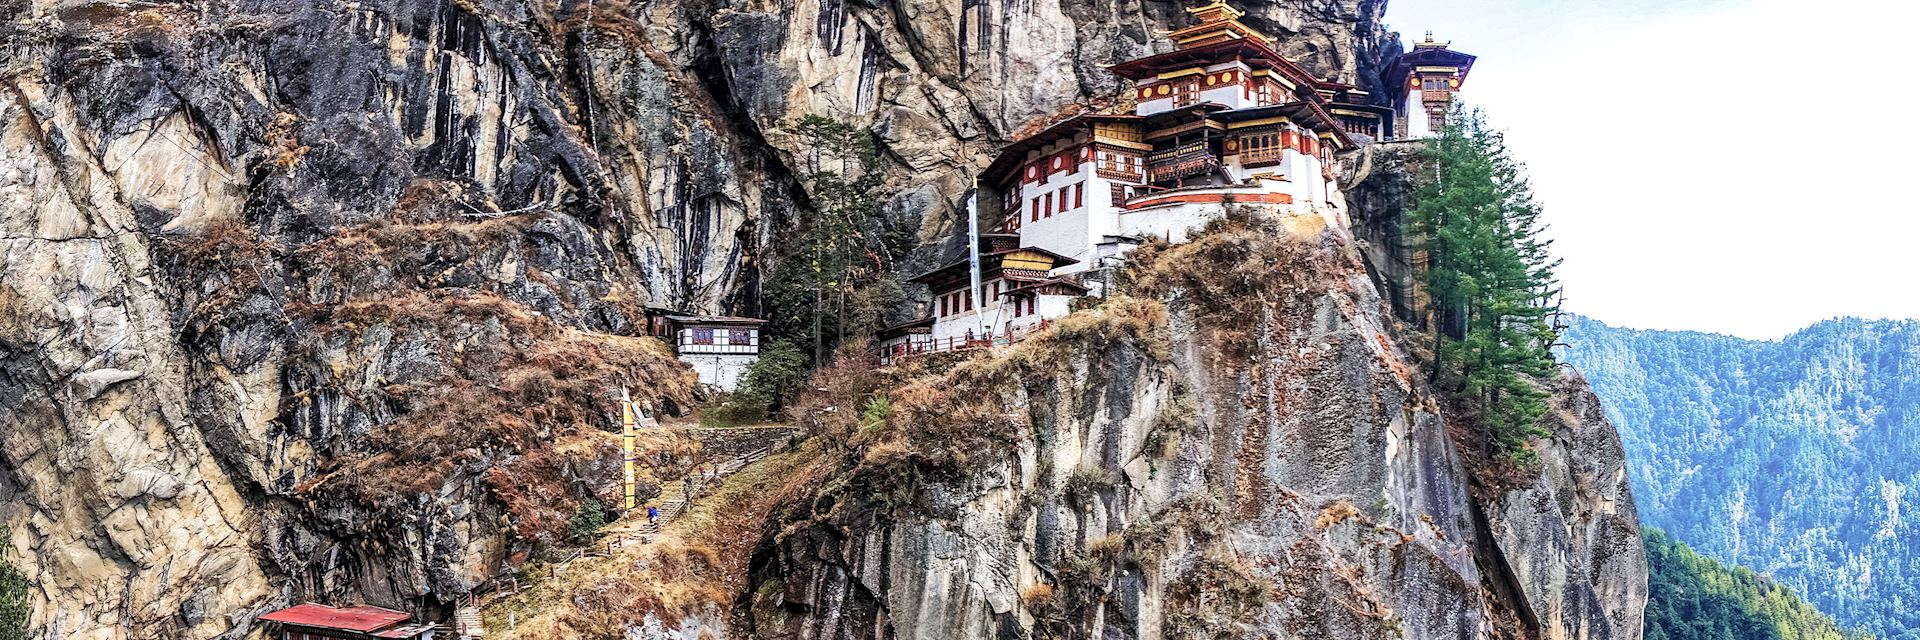 Taktshang, the Tiger's Nest Monastery